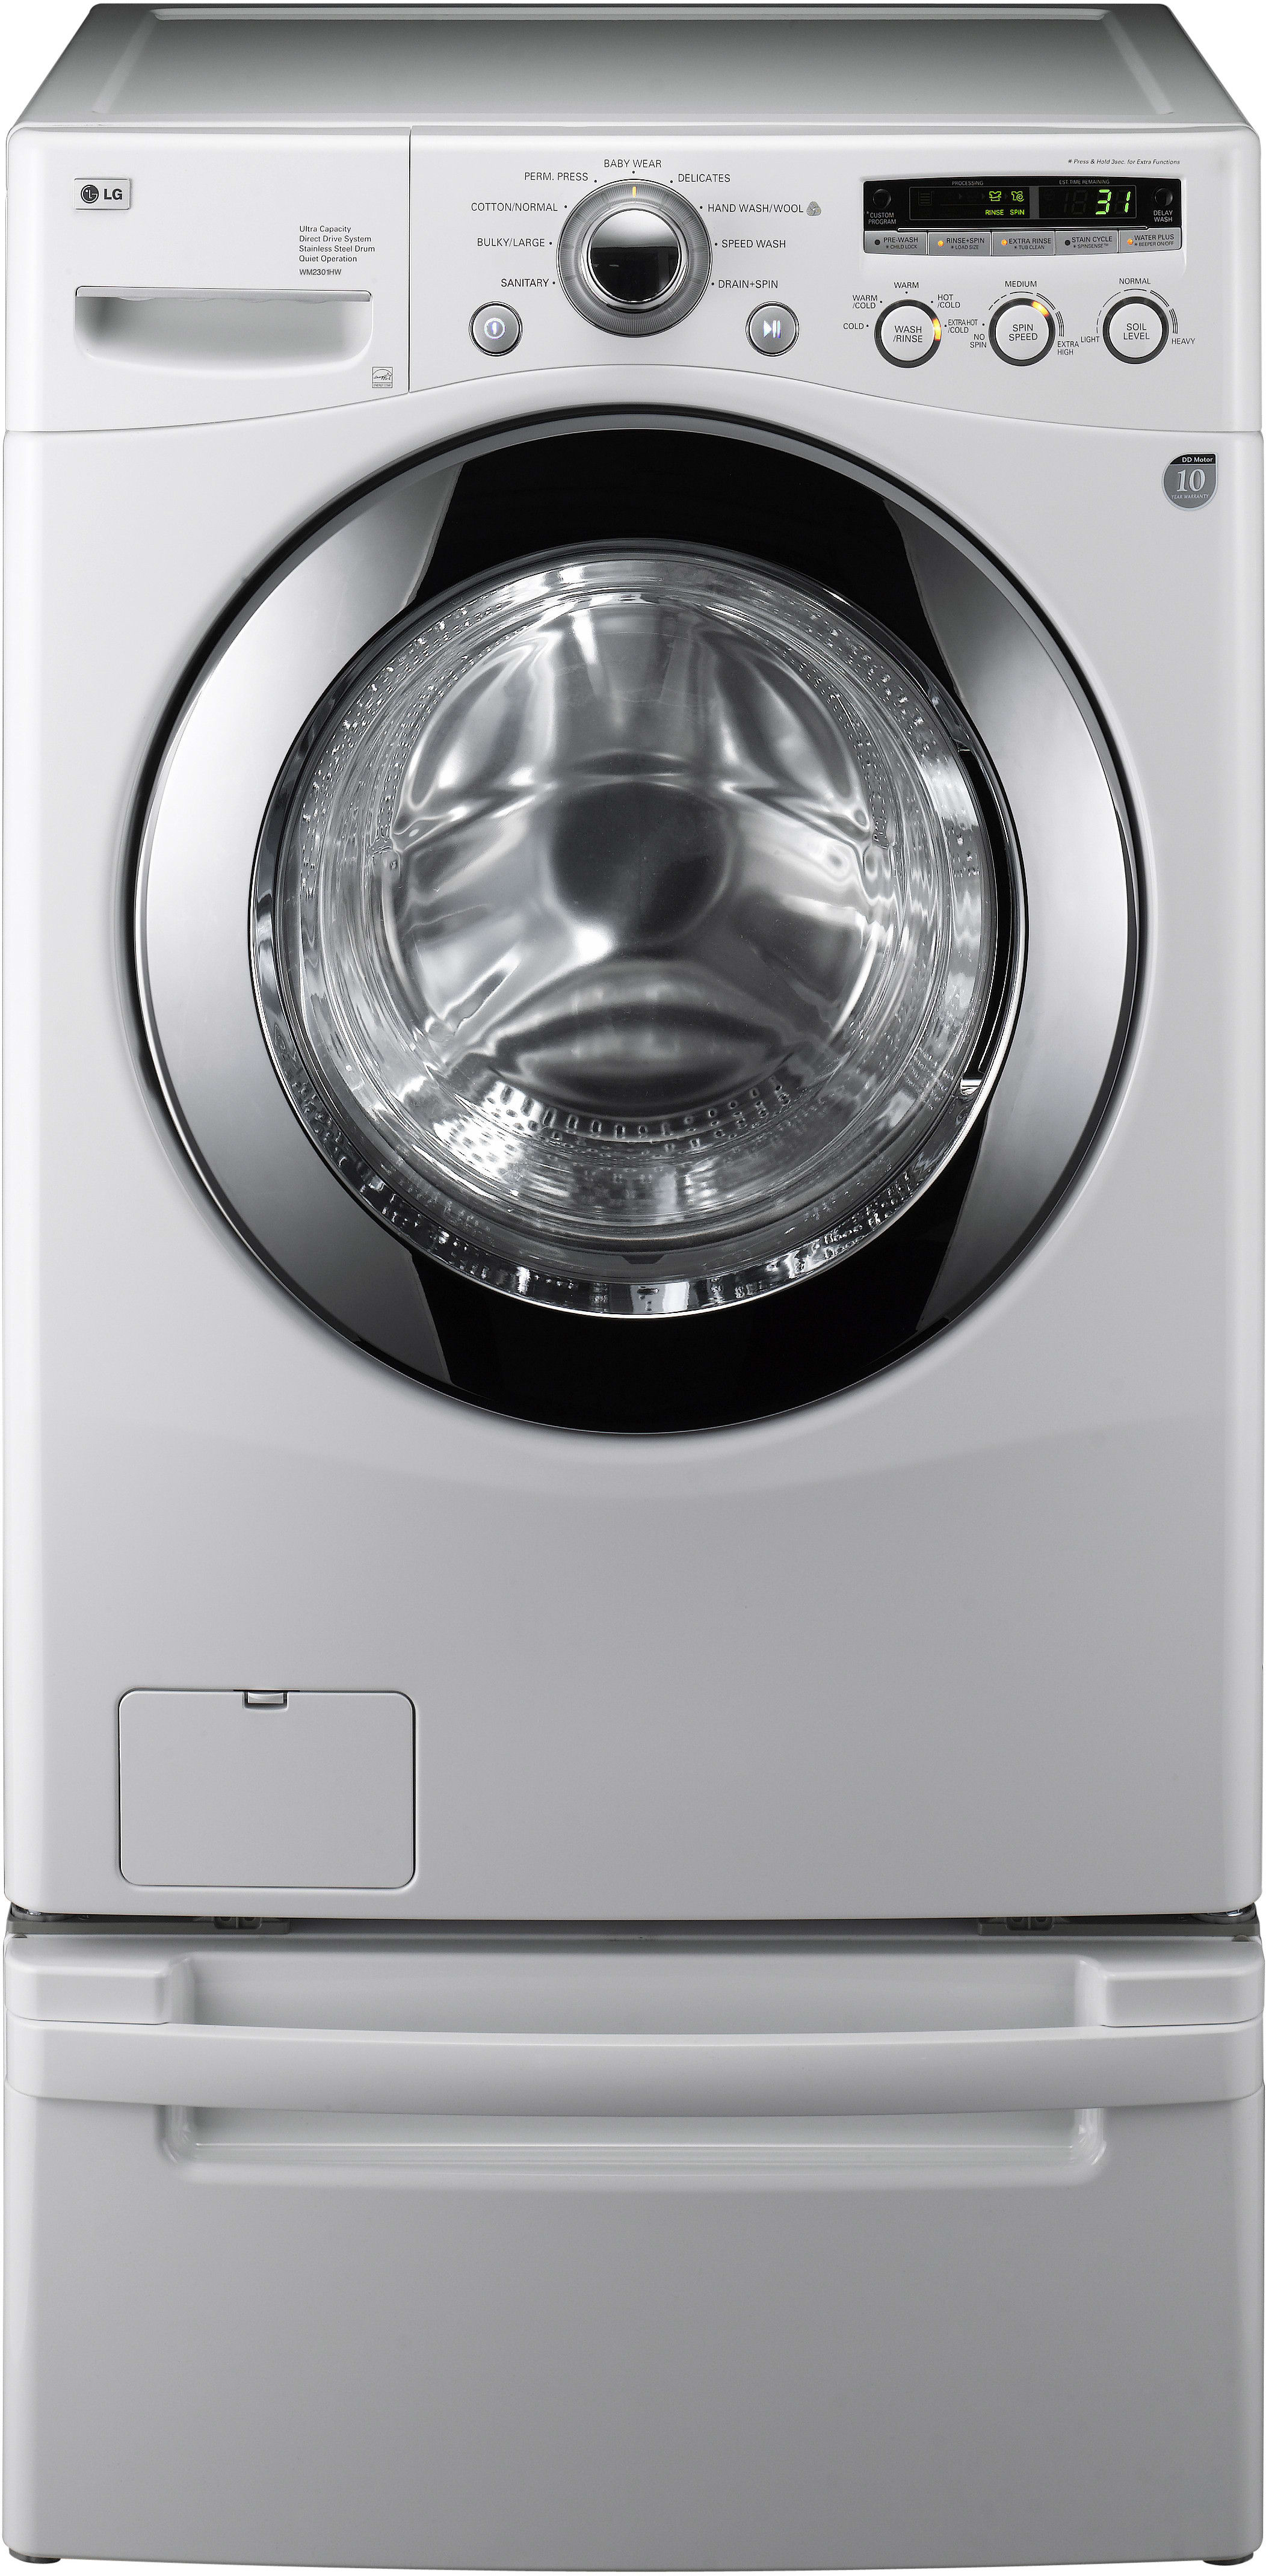 Lg Wm2301hw 27 Inch Front Load Washer With 3 6 Cu Ft